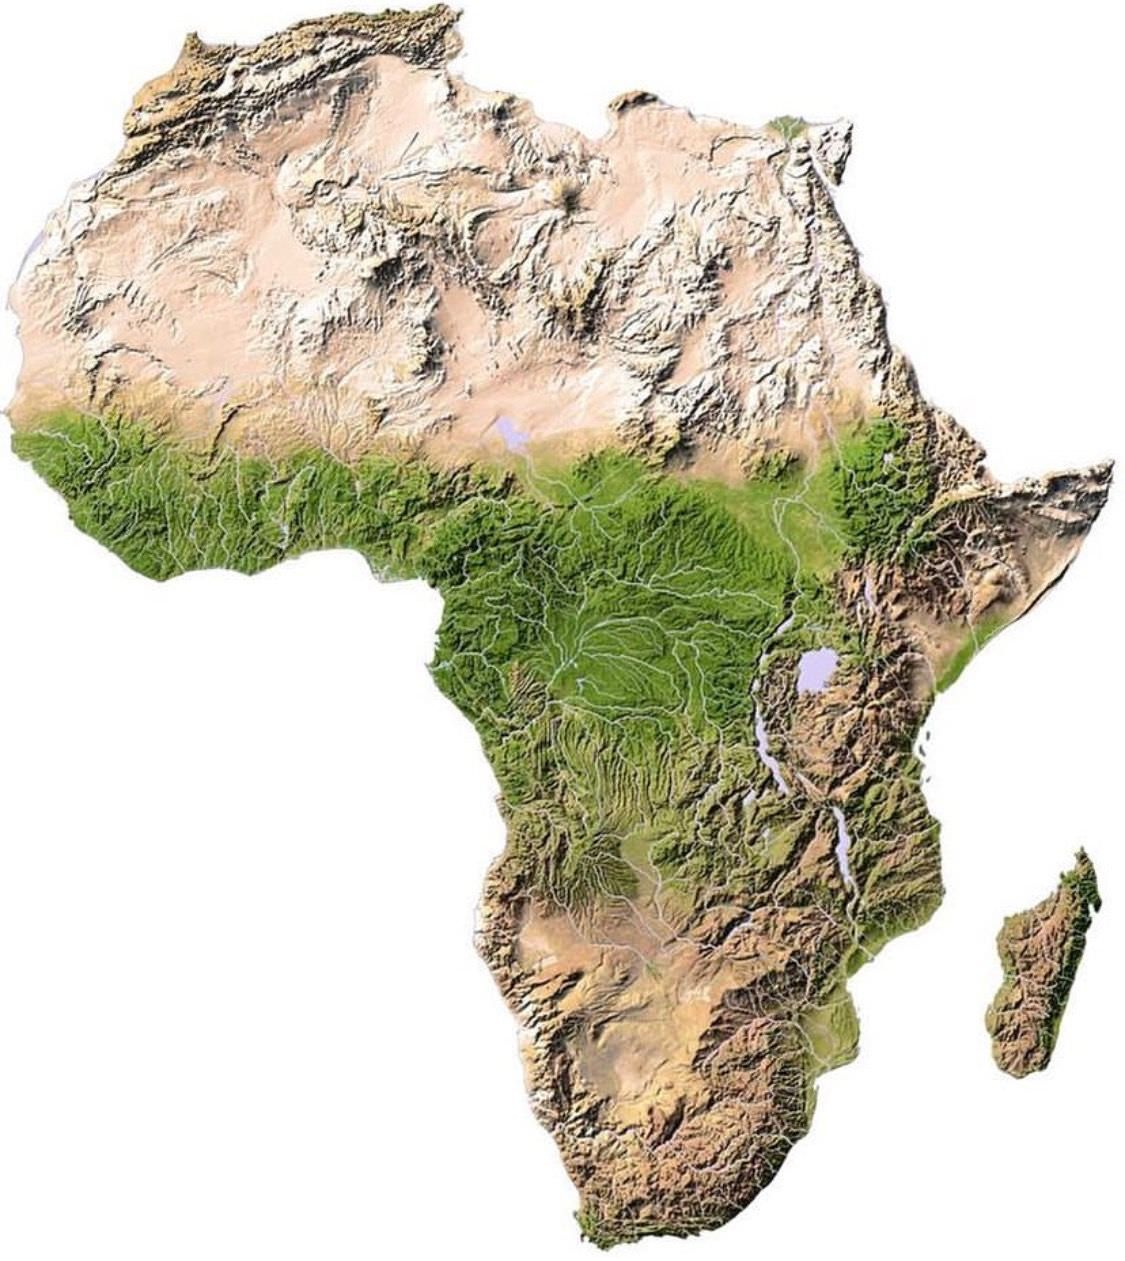 Topography Map Of Africa Topographic raised relief map of Africa | Africa map, Relief map